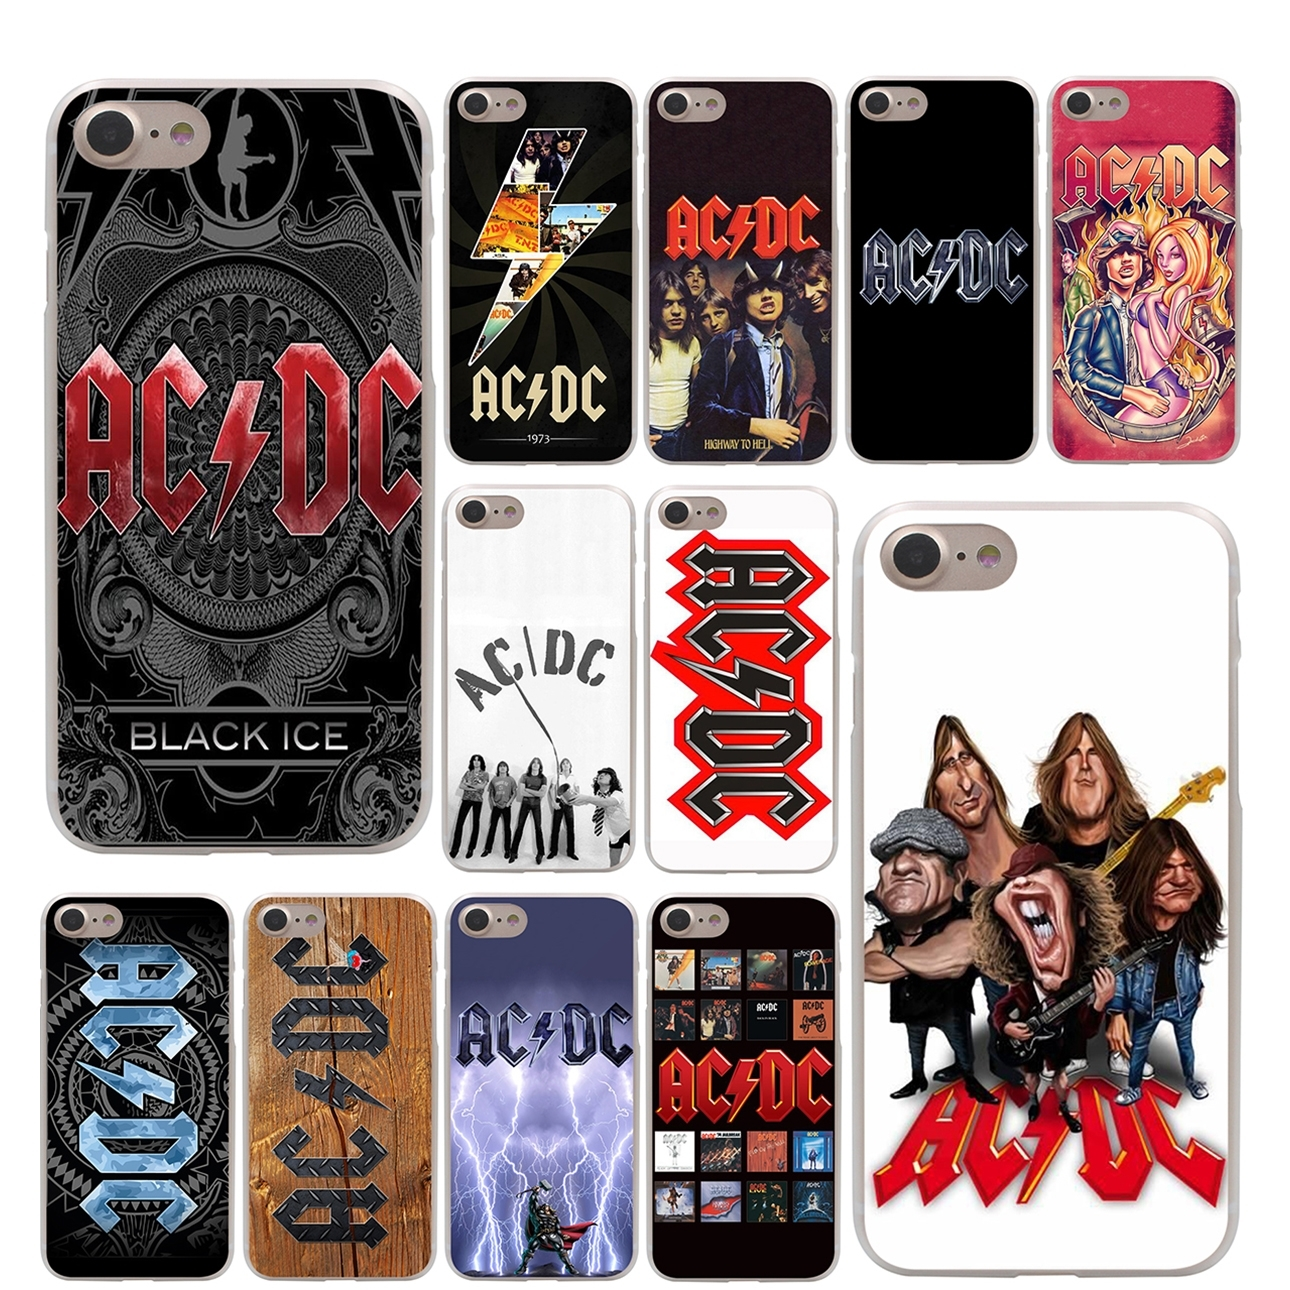 acdc phone case iphone 7